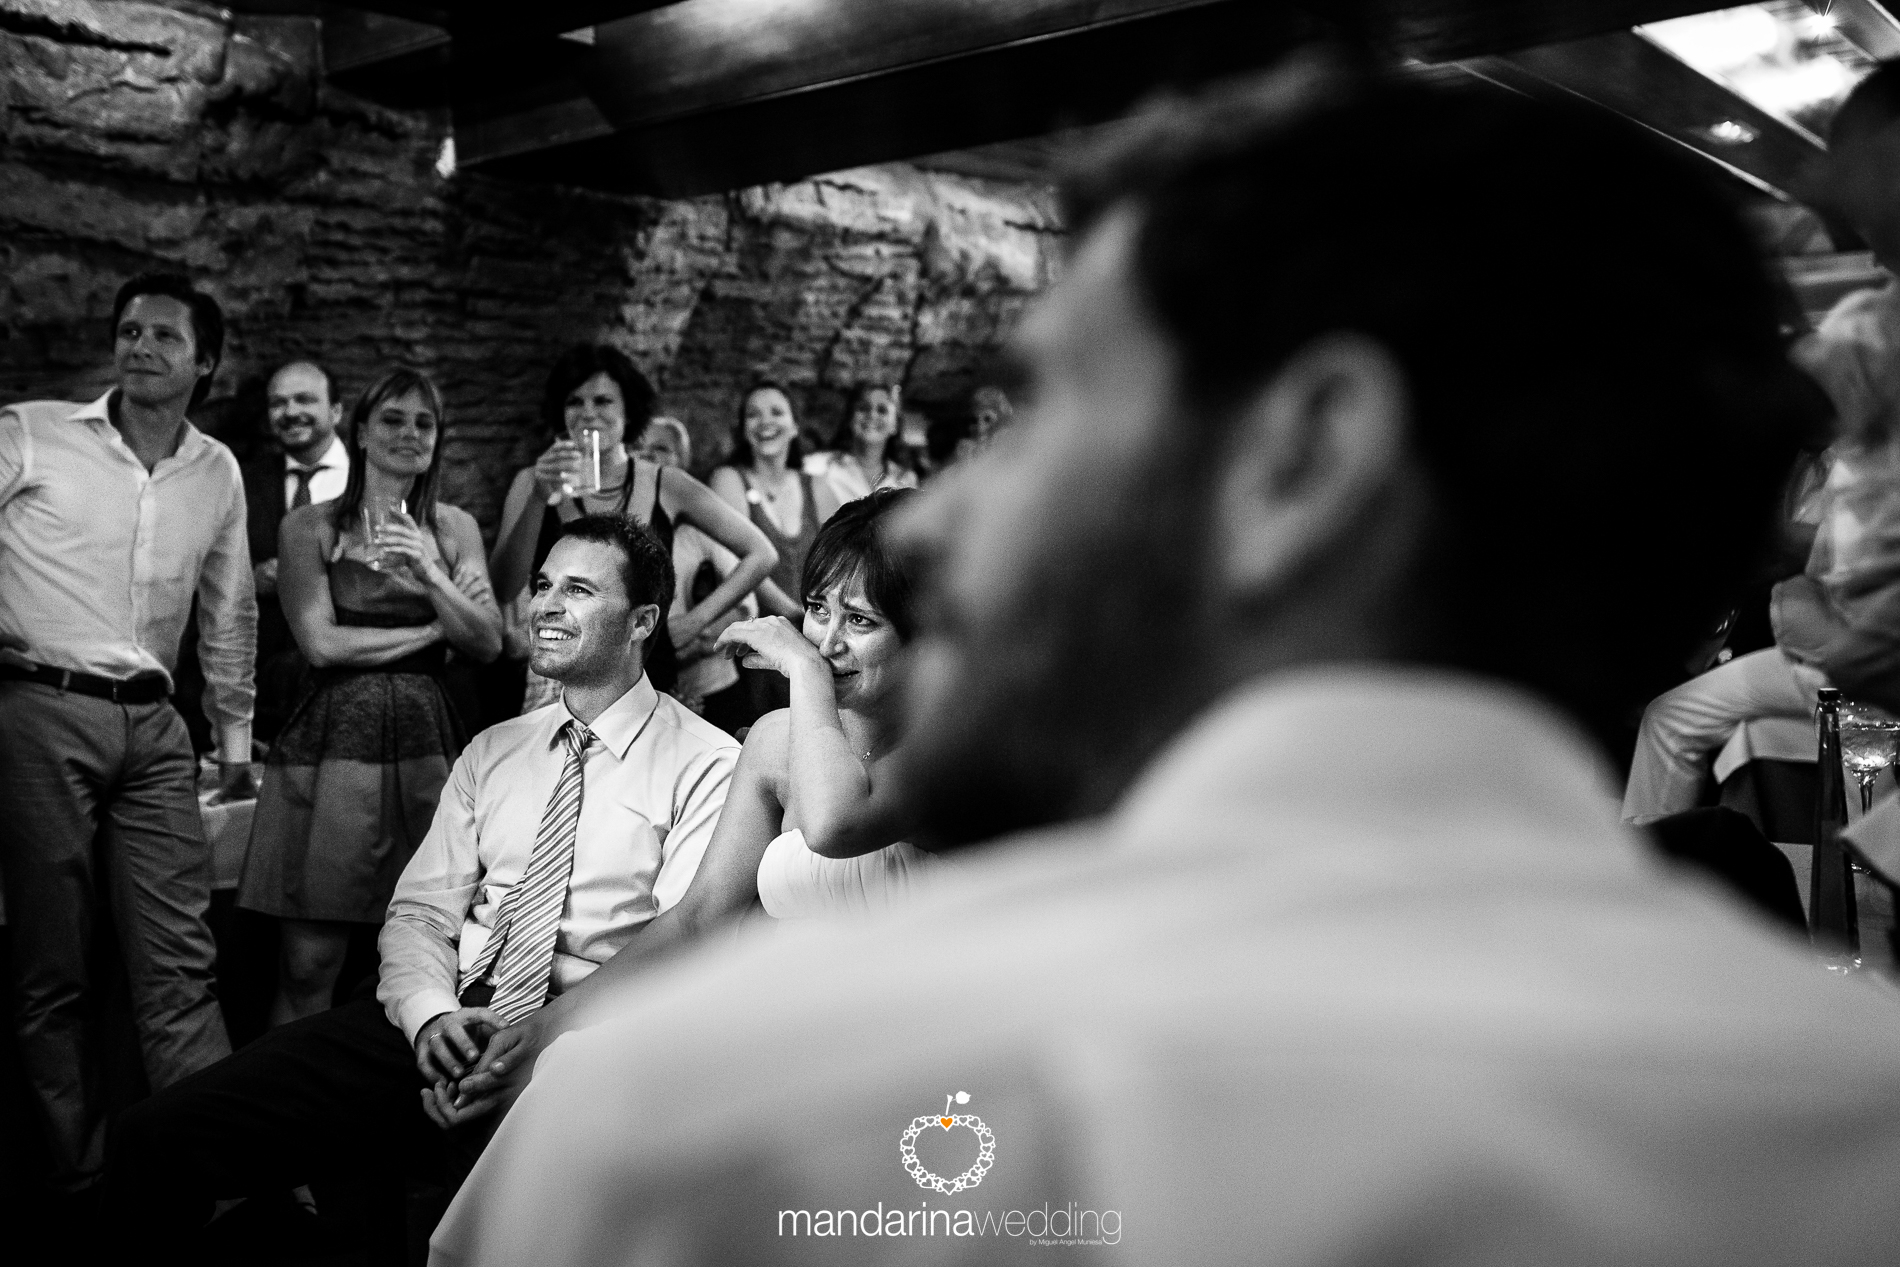 mandarina wedding_37